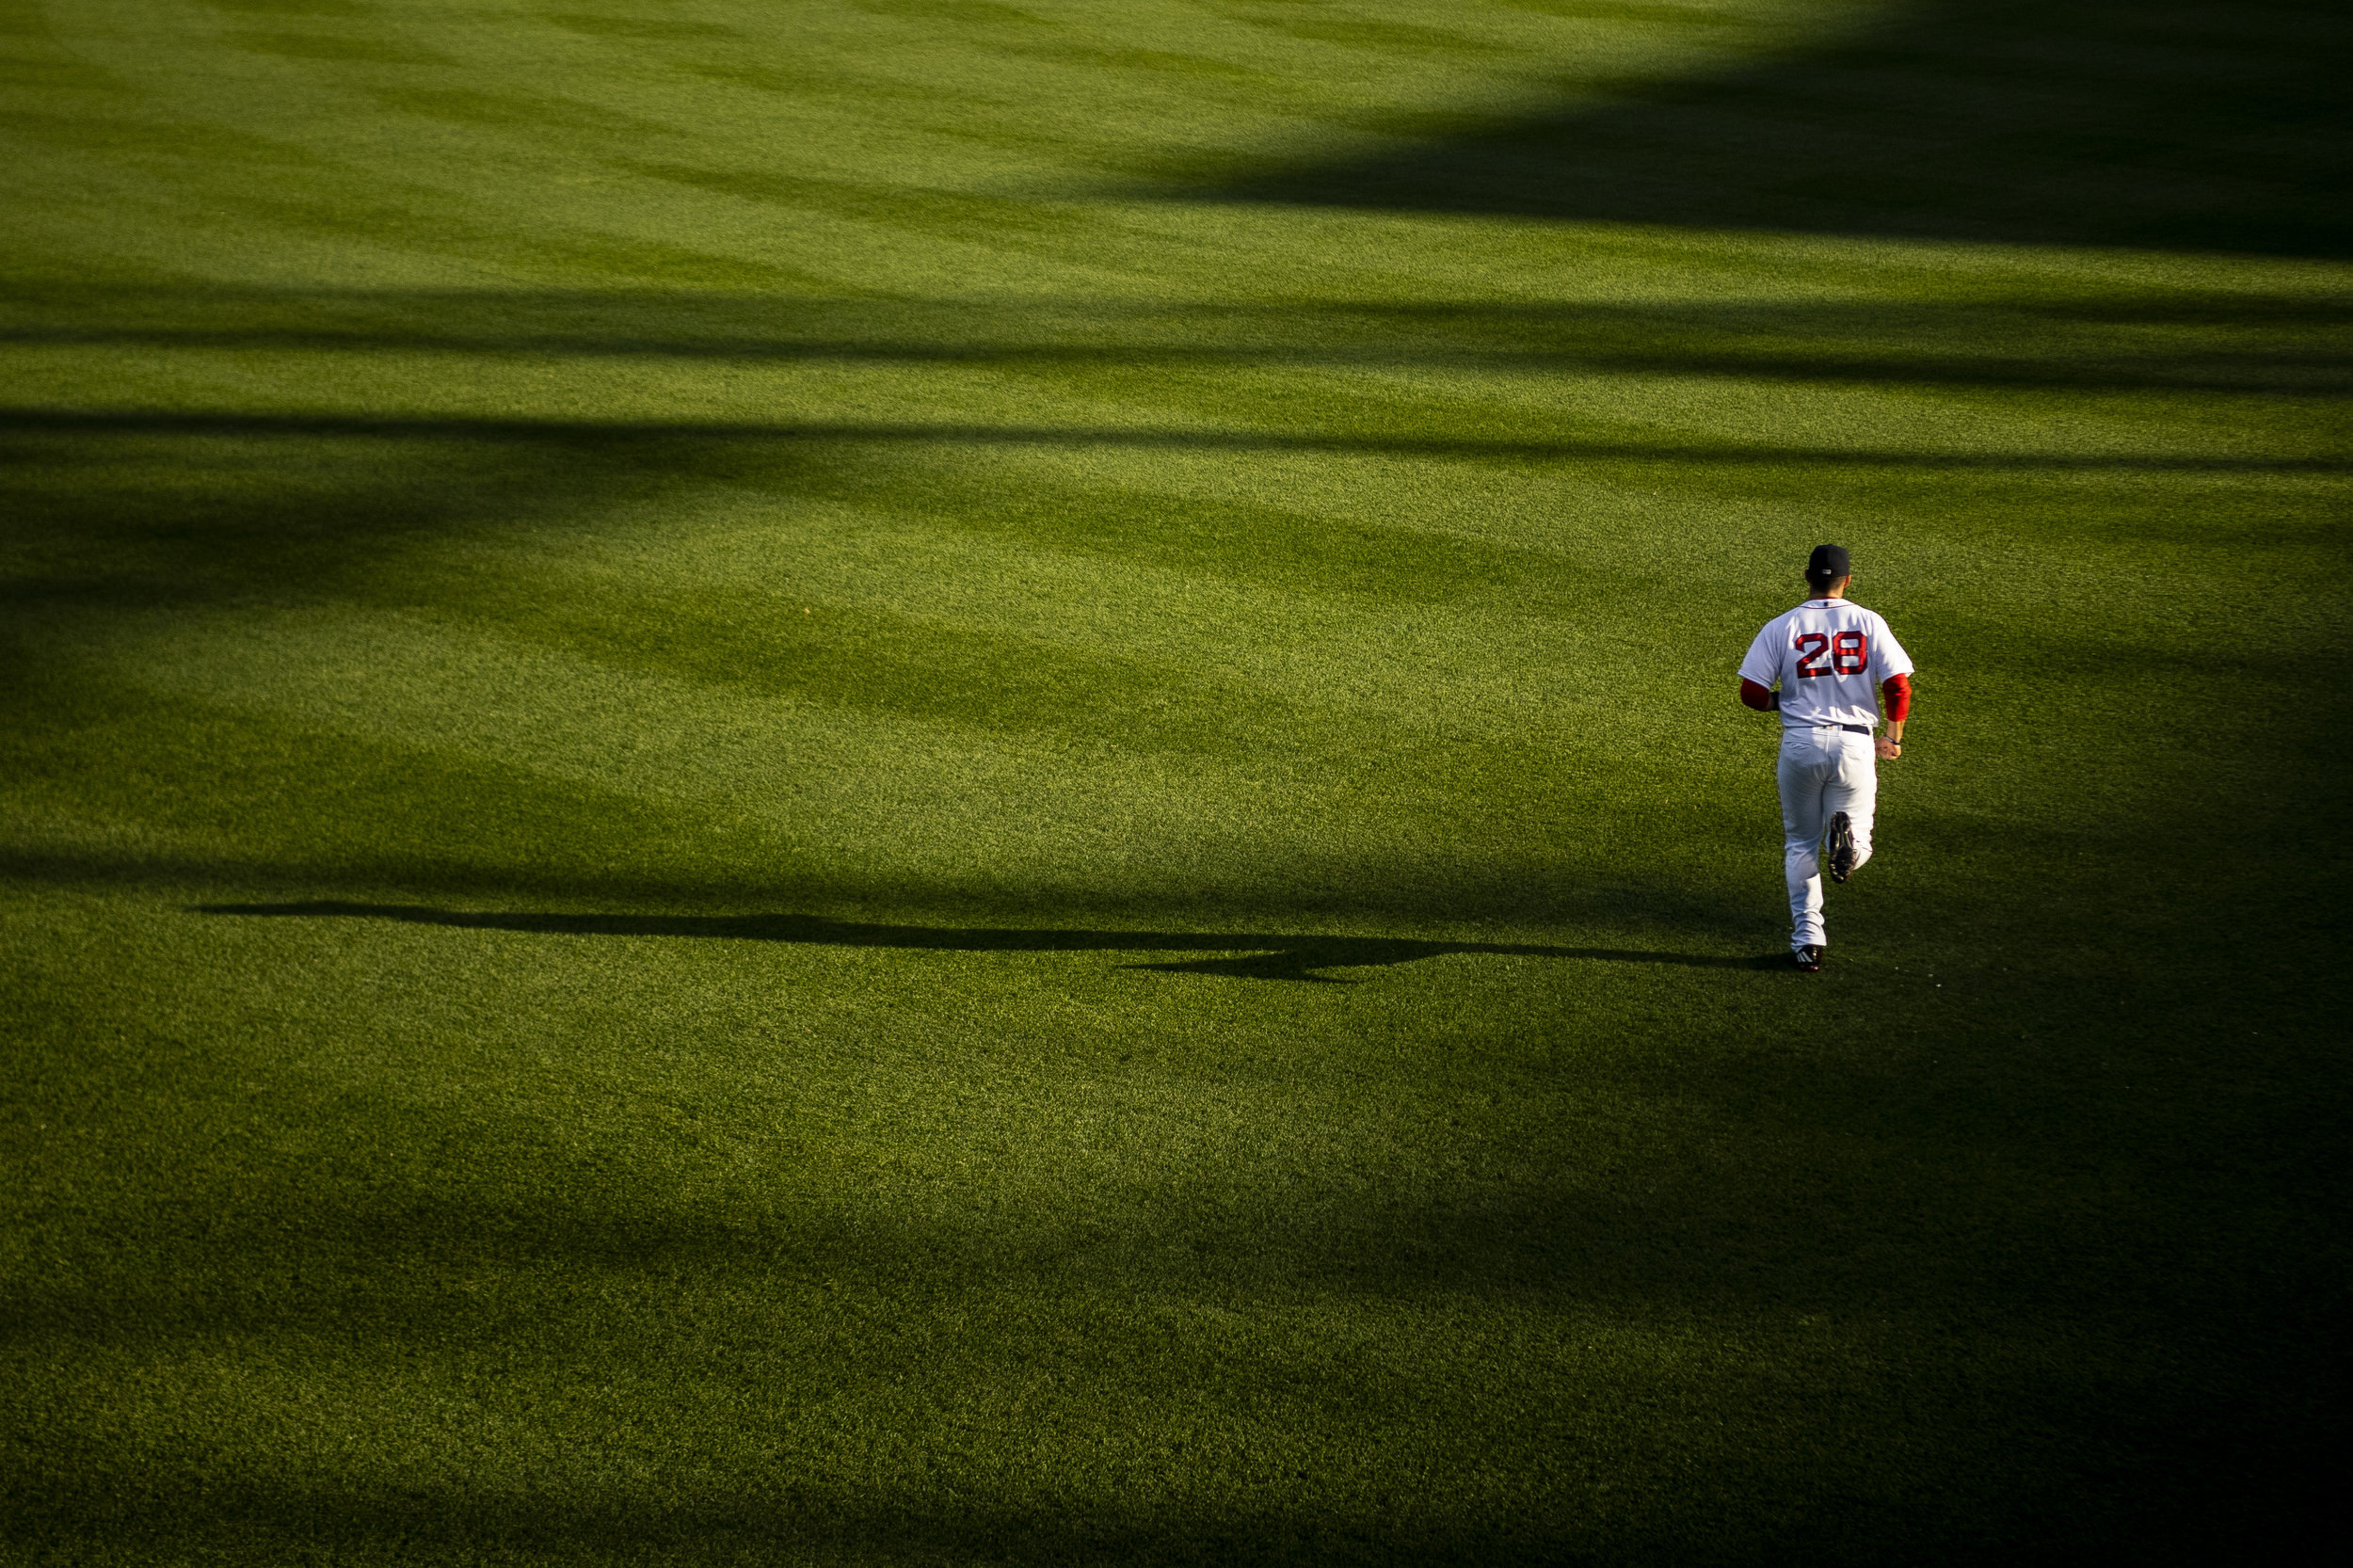 May 29, 2018, Boston, MA: Boston Red Sox designated hitter J.D. Martinez jogs back to the dugout from the outfield before the Boston Red Sox face the Toronto Blue Jays at Fenway Park in Boston, Massachusetts on Tuesday, May 29, 2018. (Photo by Matthew Thomas/Boston Red Sox)